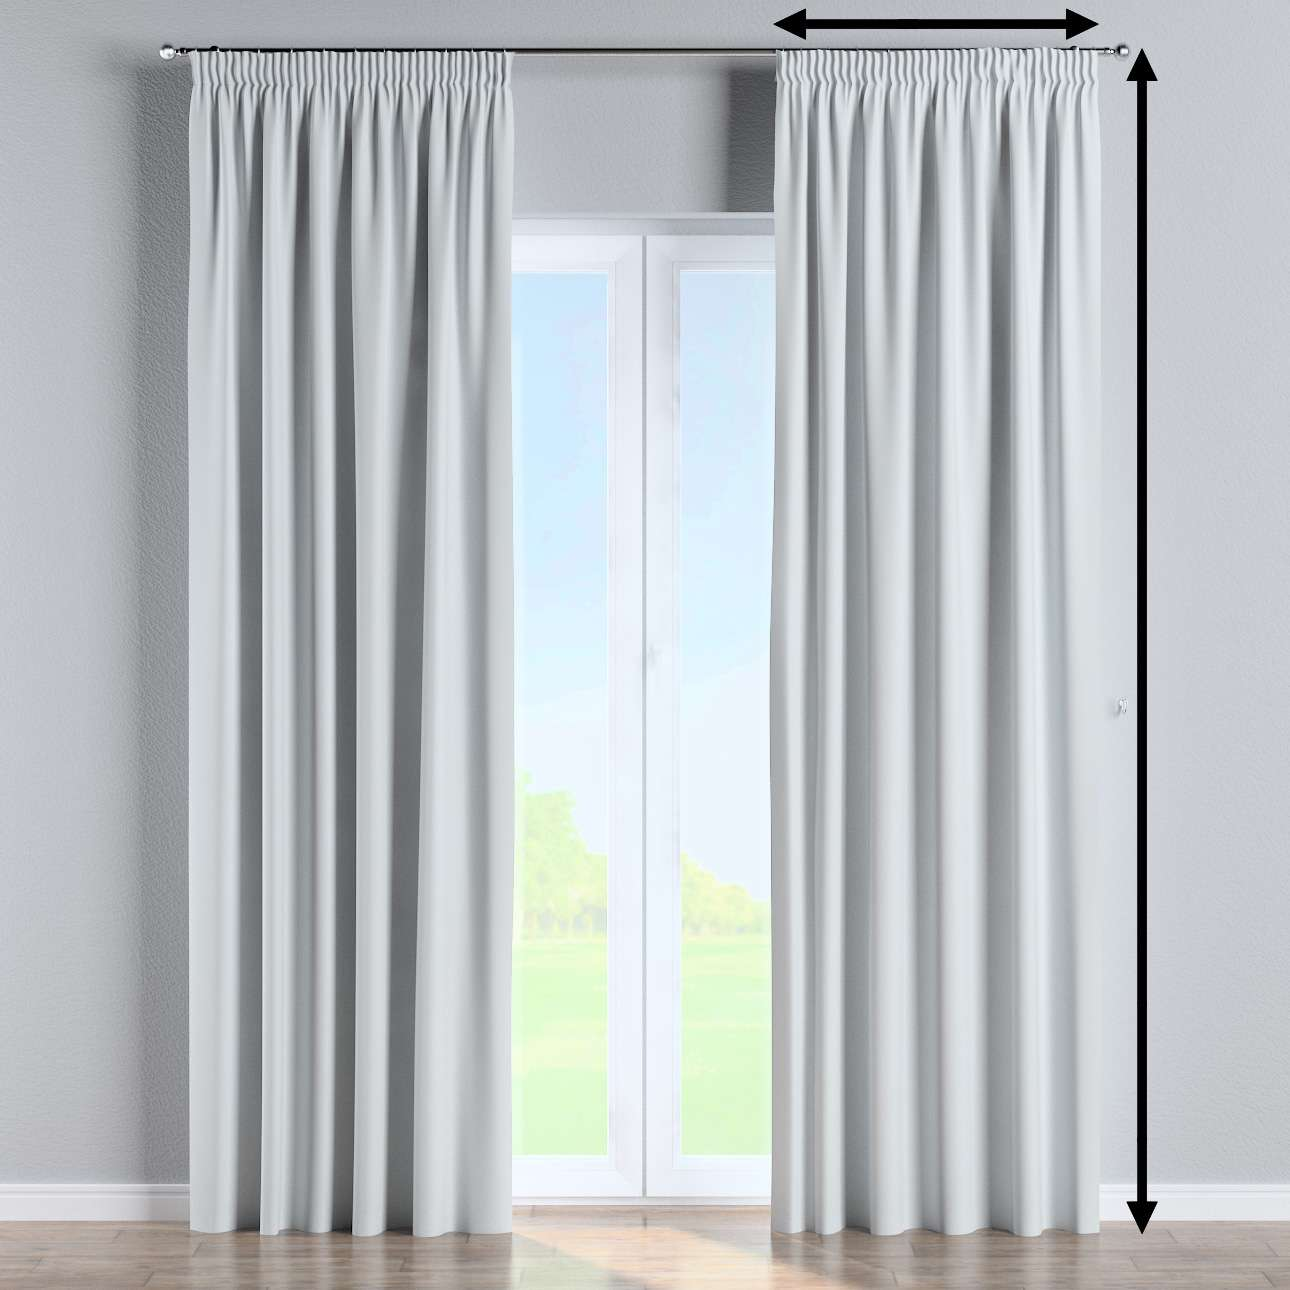 Blackout pencil pleat curtain in collection Blackout 280 cm, fabric: 269-05